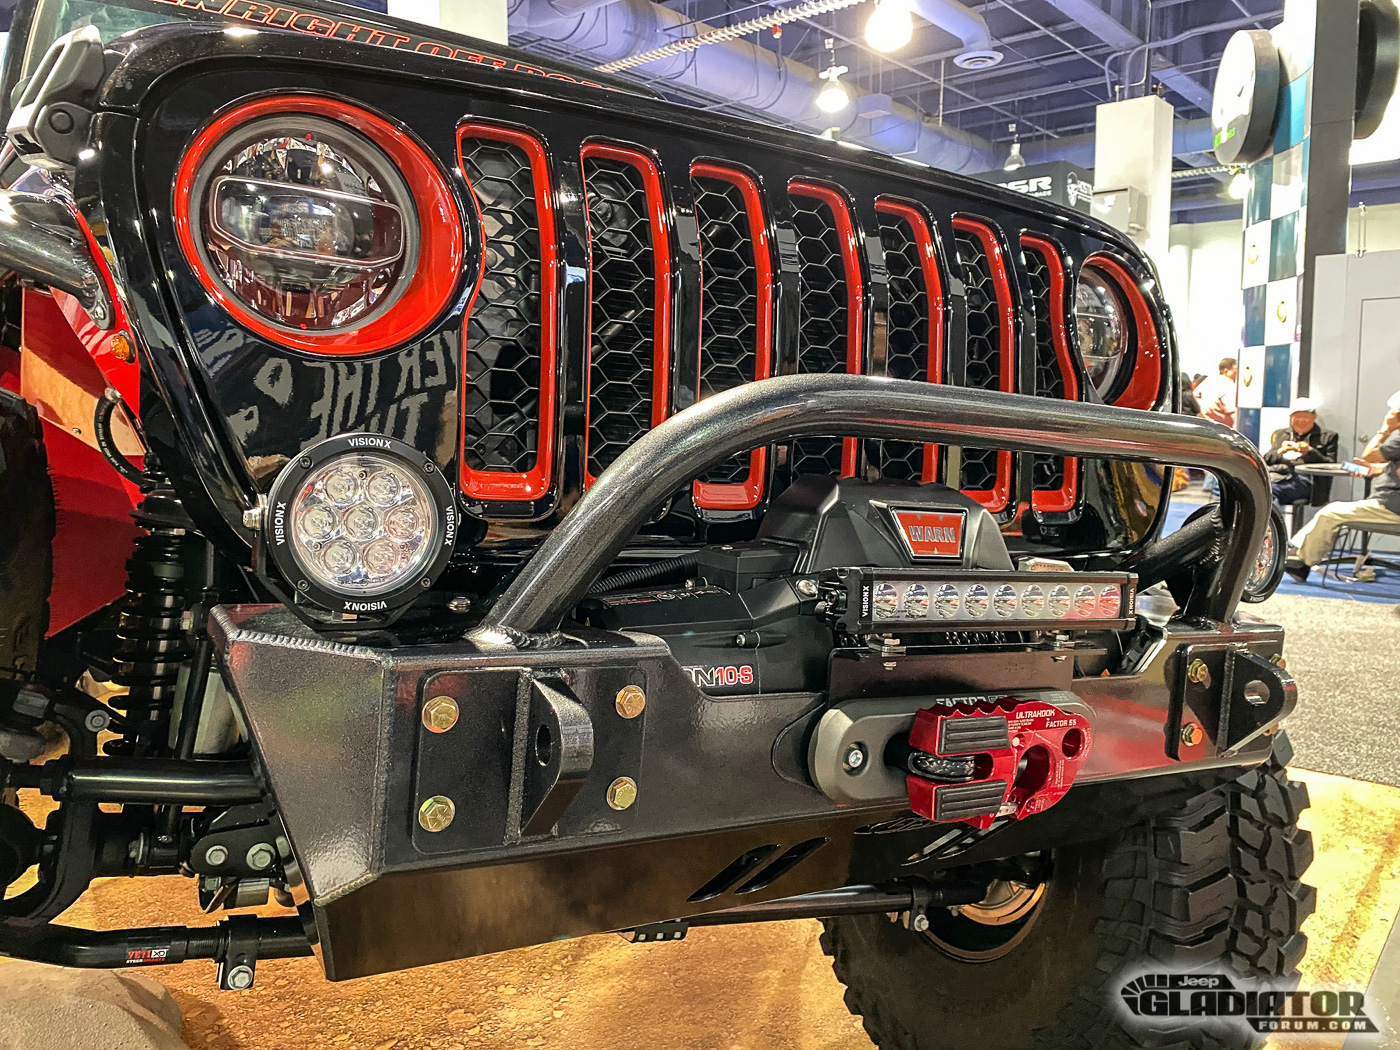 Mickey-Thompson-Genright-Off-Road-Baja-Boss-Edition-Gladiator-Build-SEMA-2019-5.jpg